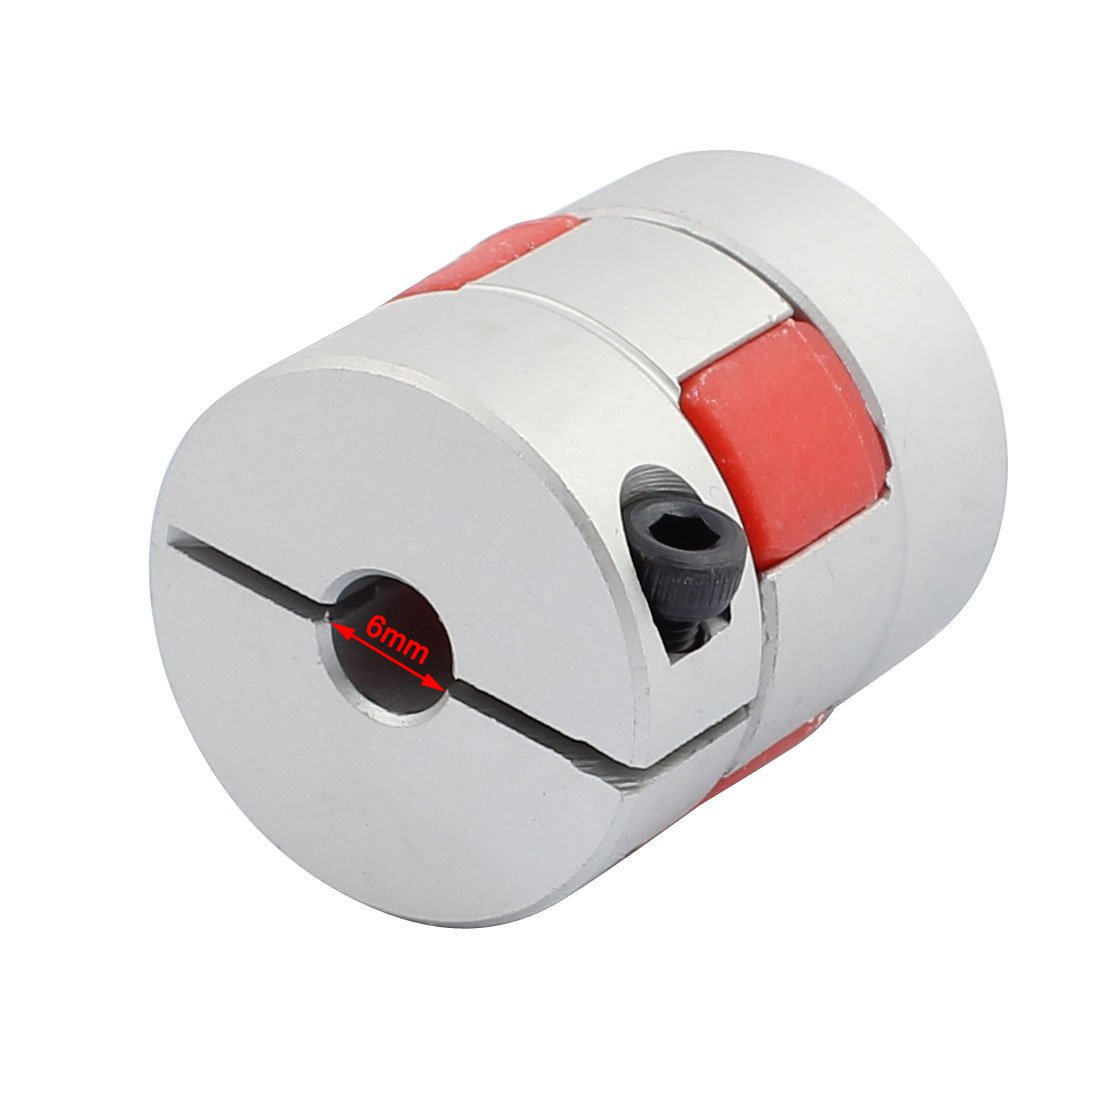 uxcell 8mm to 8mm Shaft Coupling 30mm Length 25mm Diameter Motor Coupler Aluminum Alloy Joint Connector for DIY Encoder